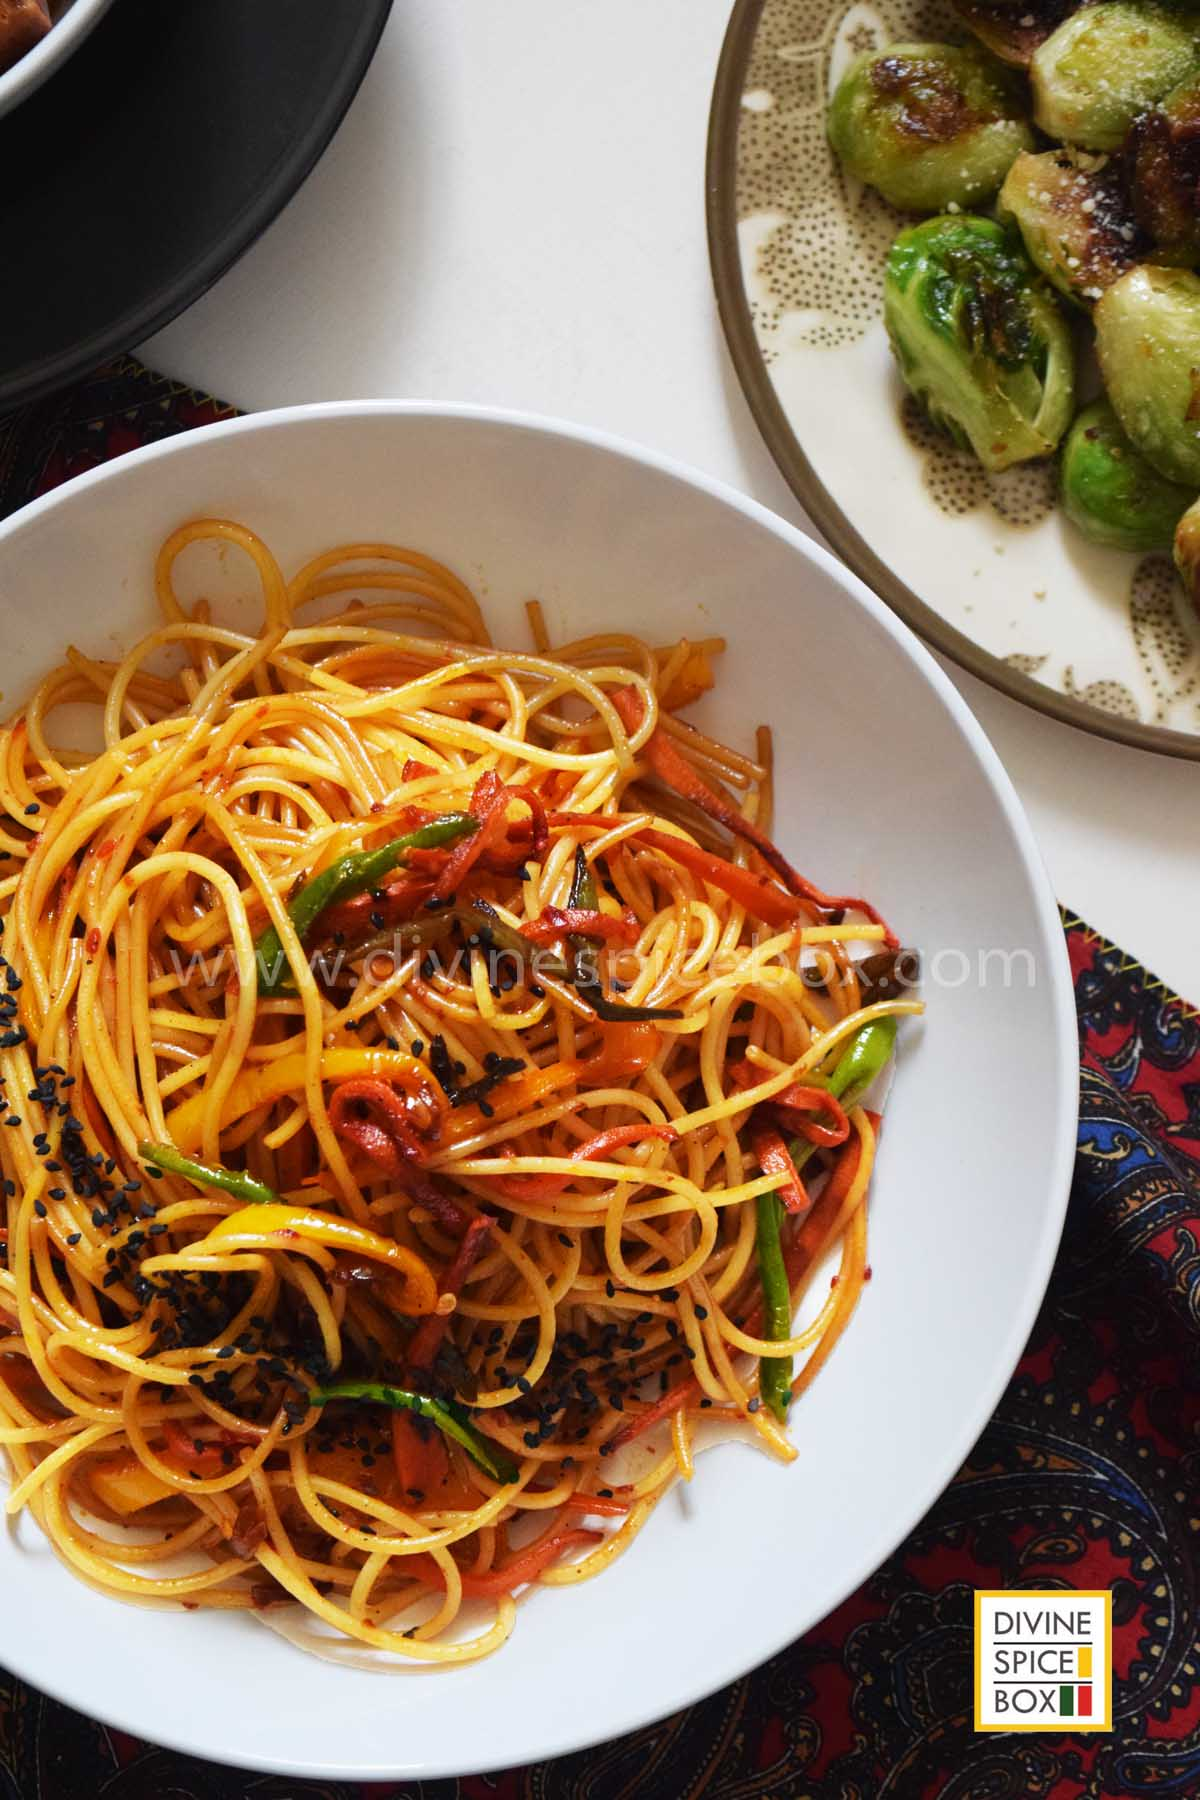 Sweet chili garlic Noodles